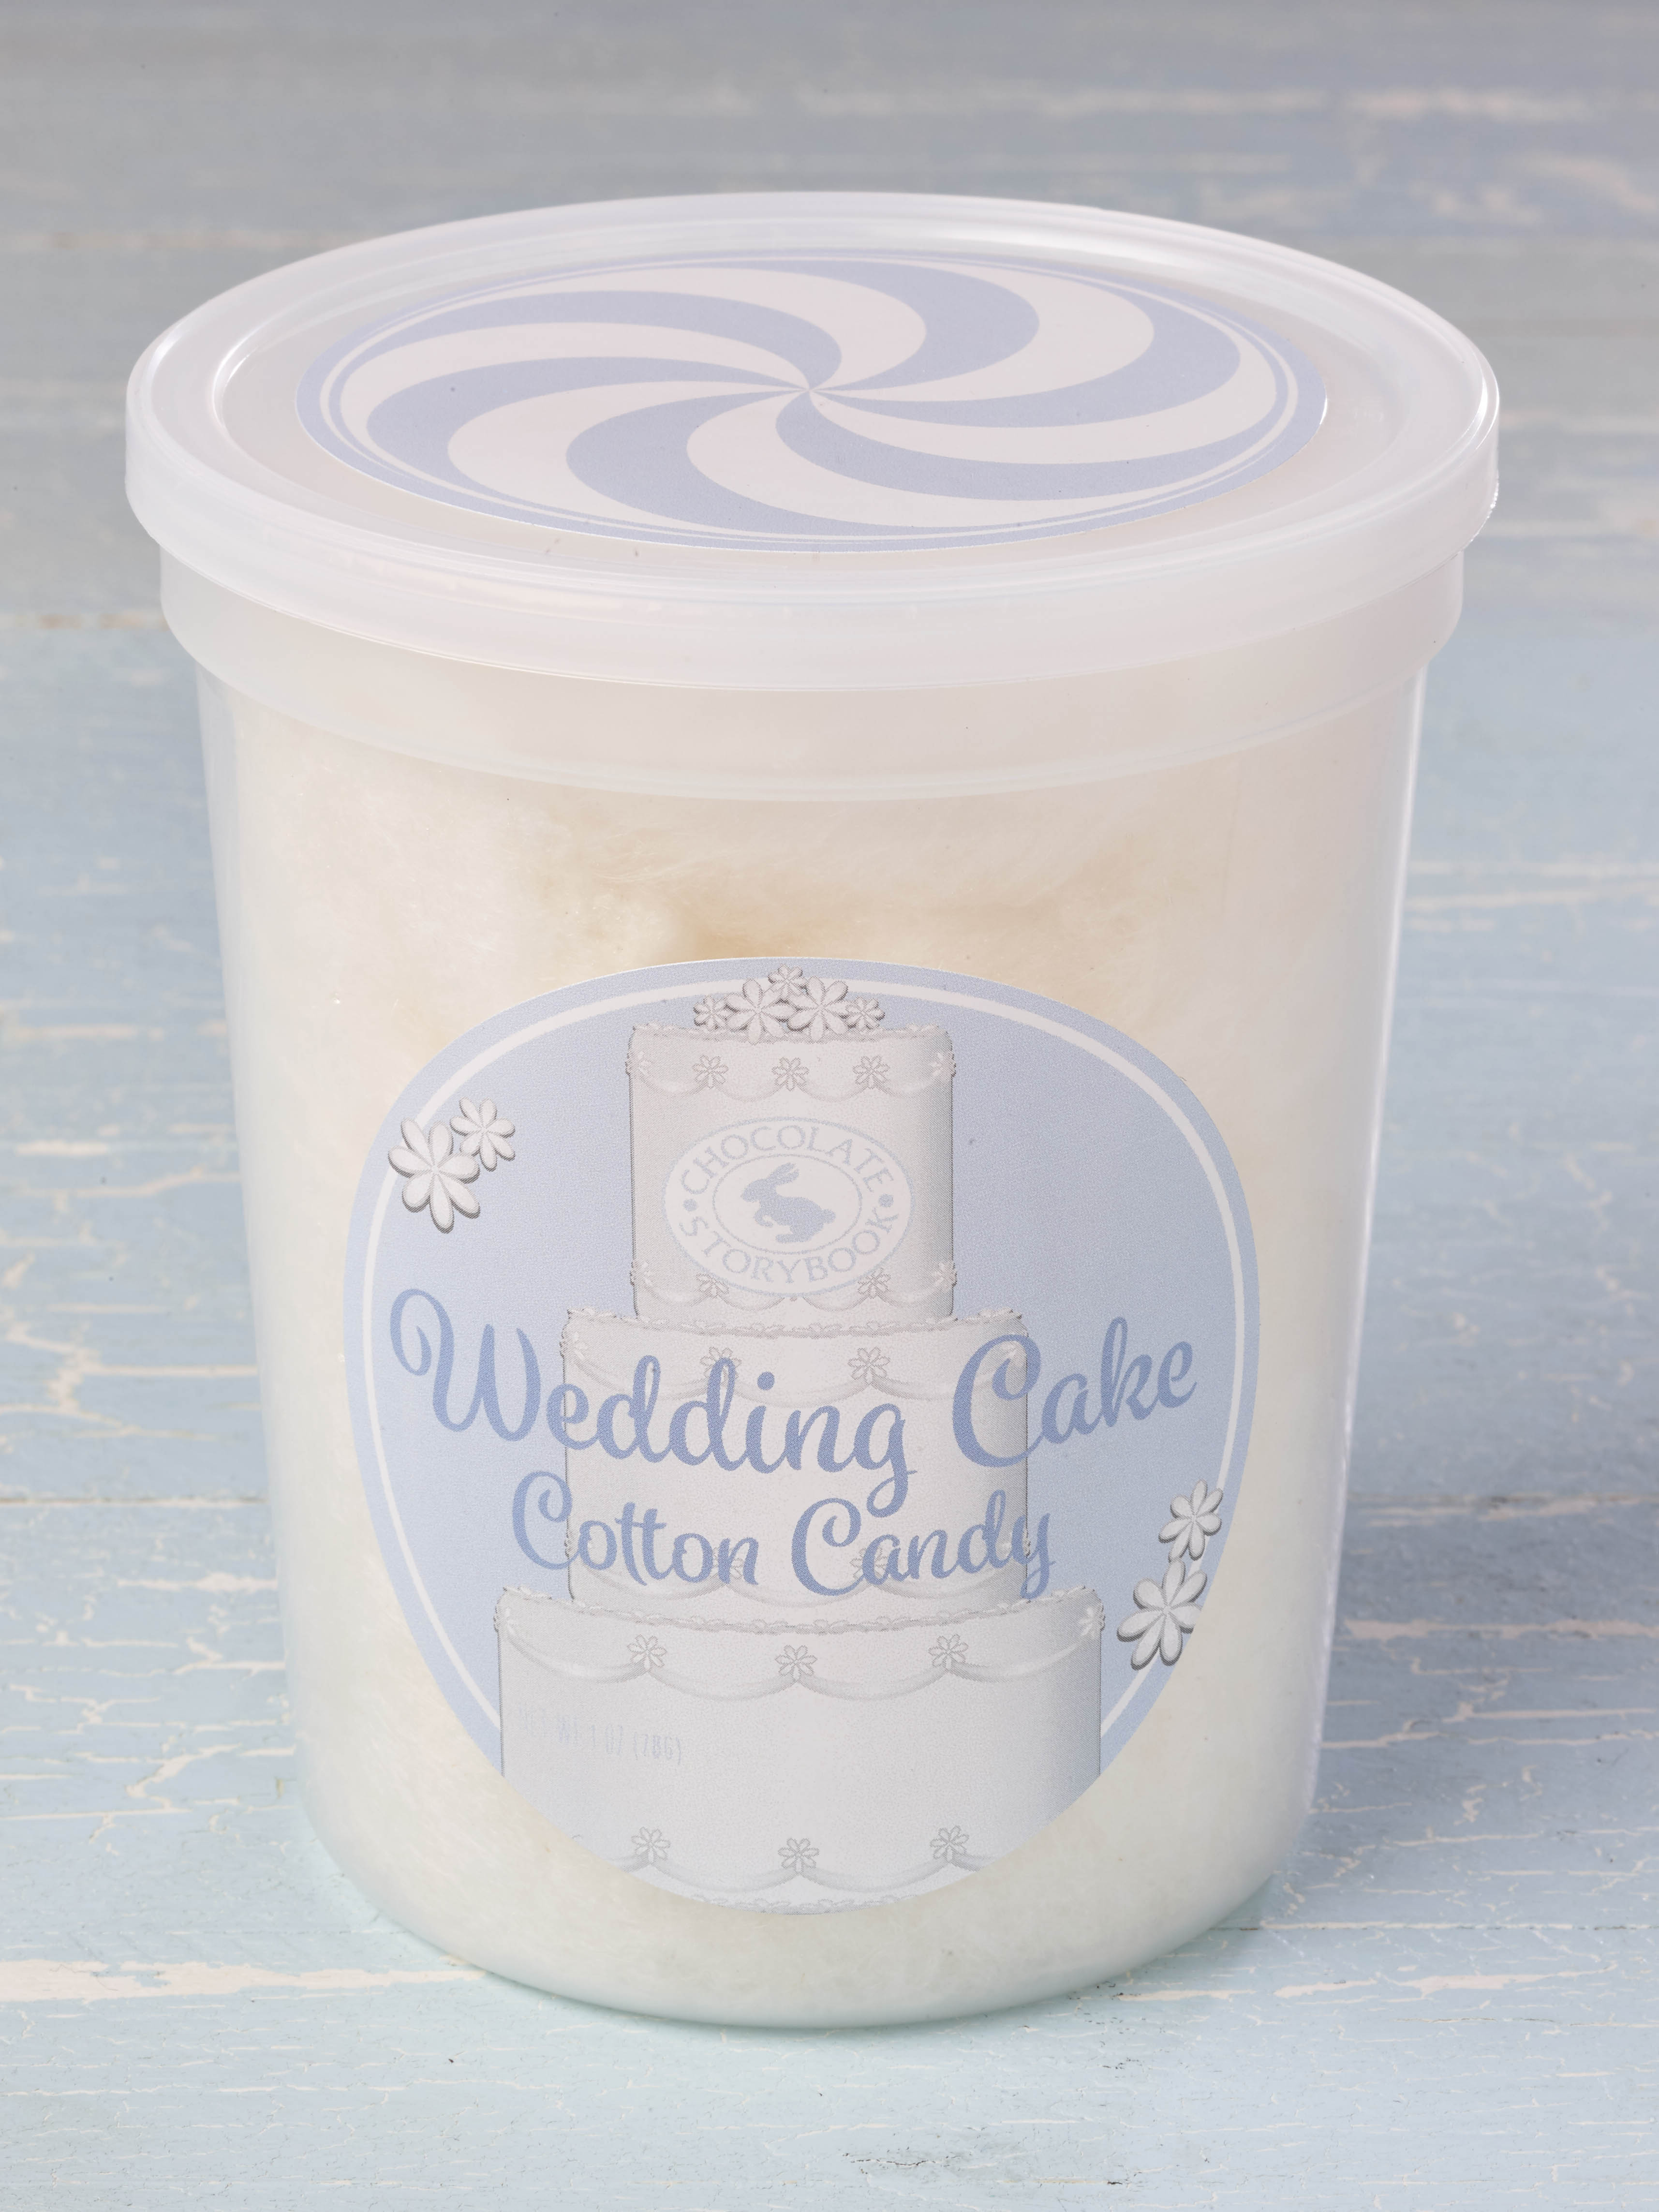 Wedding Cake Cotton Candy | Custom, Handmade Chocolates & Gifts by ...